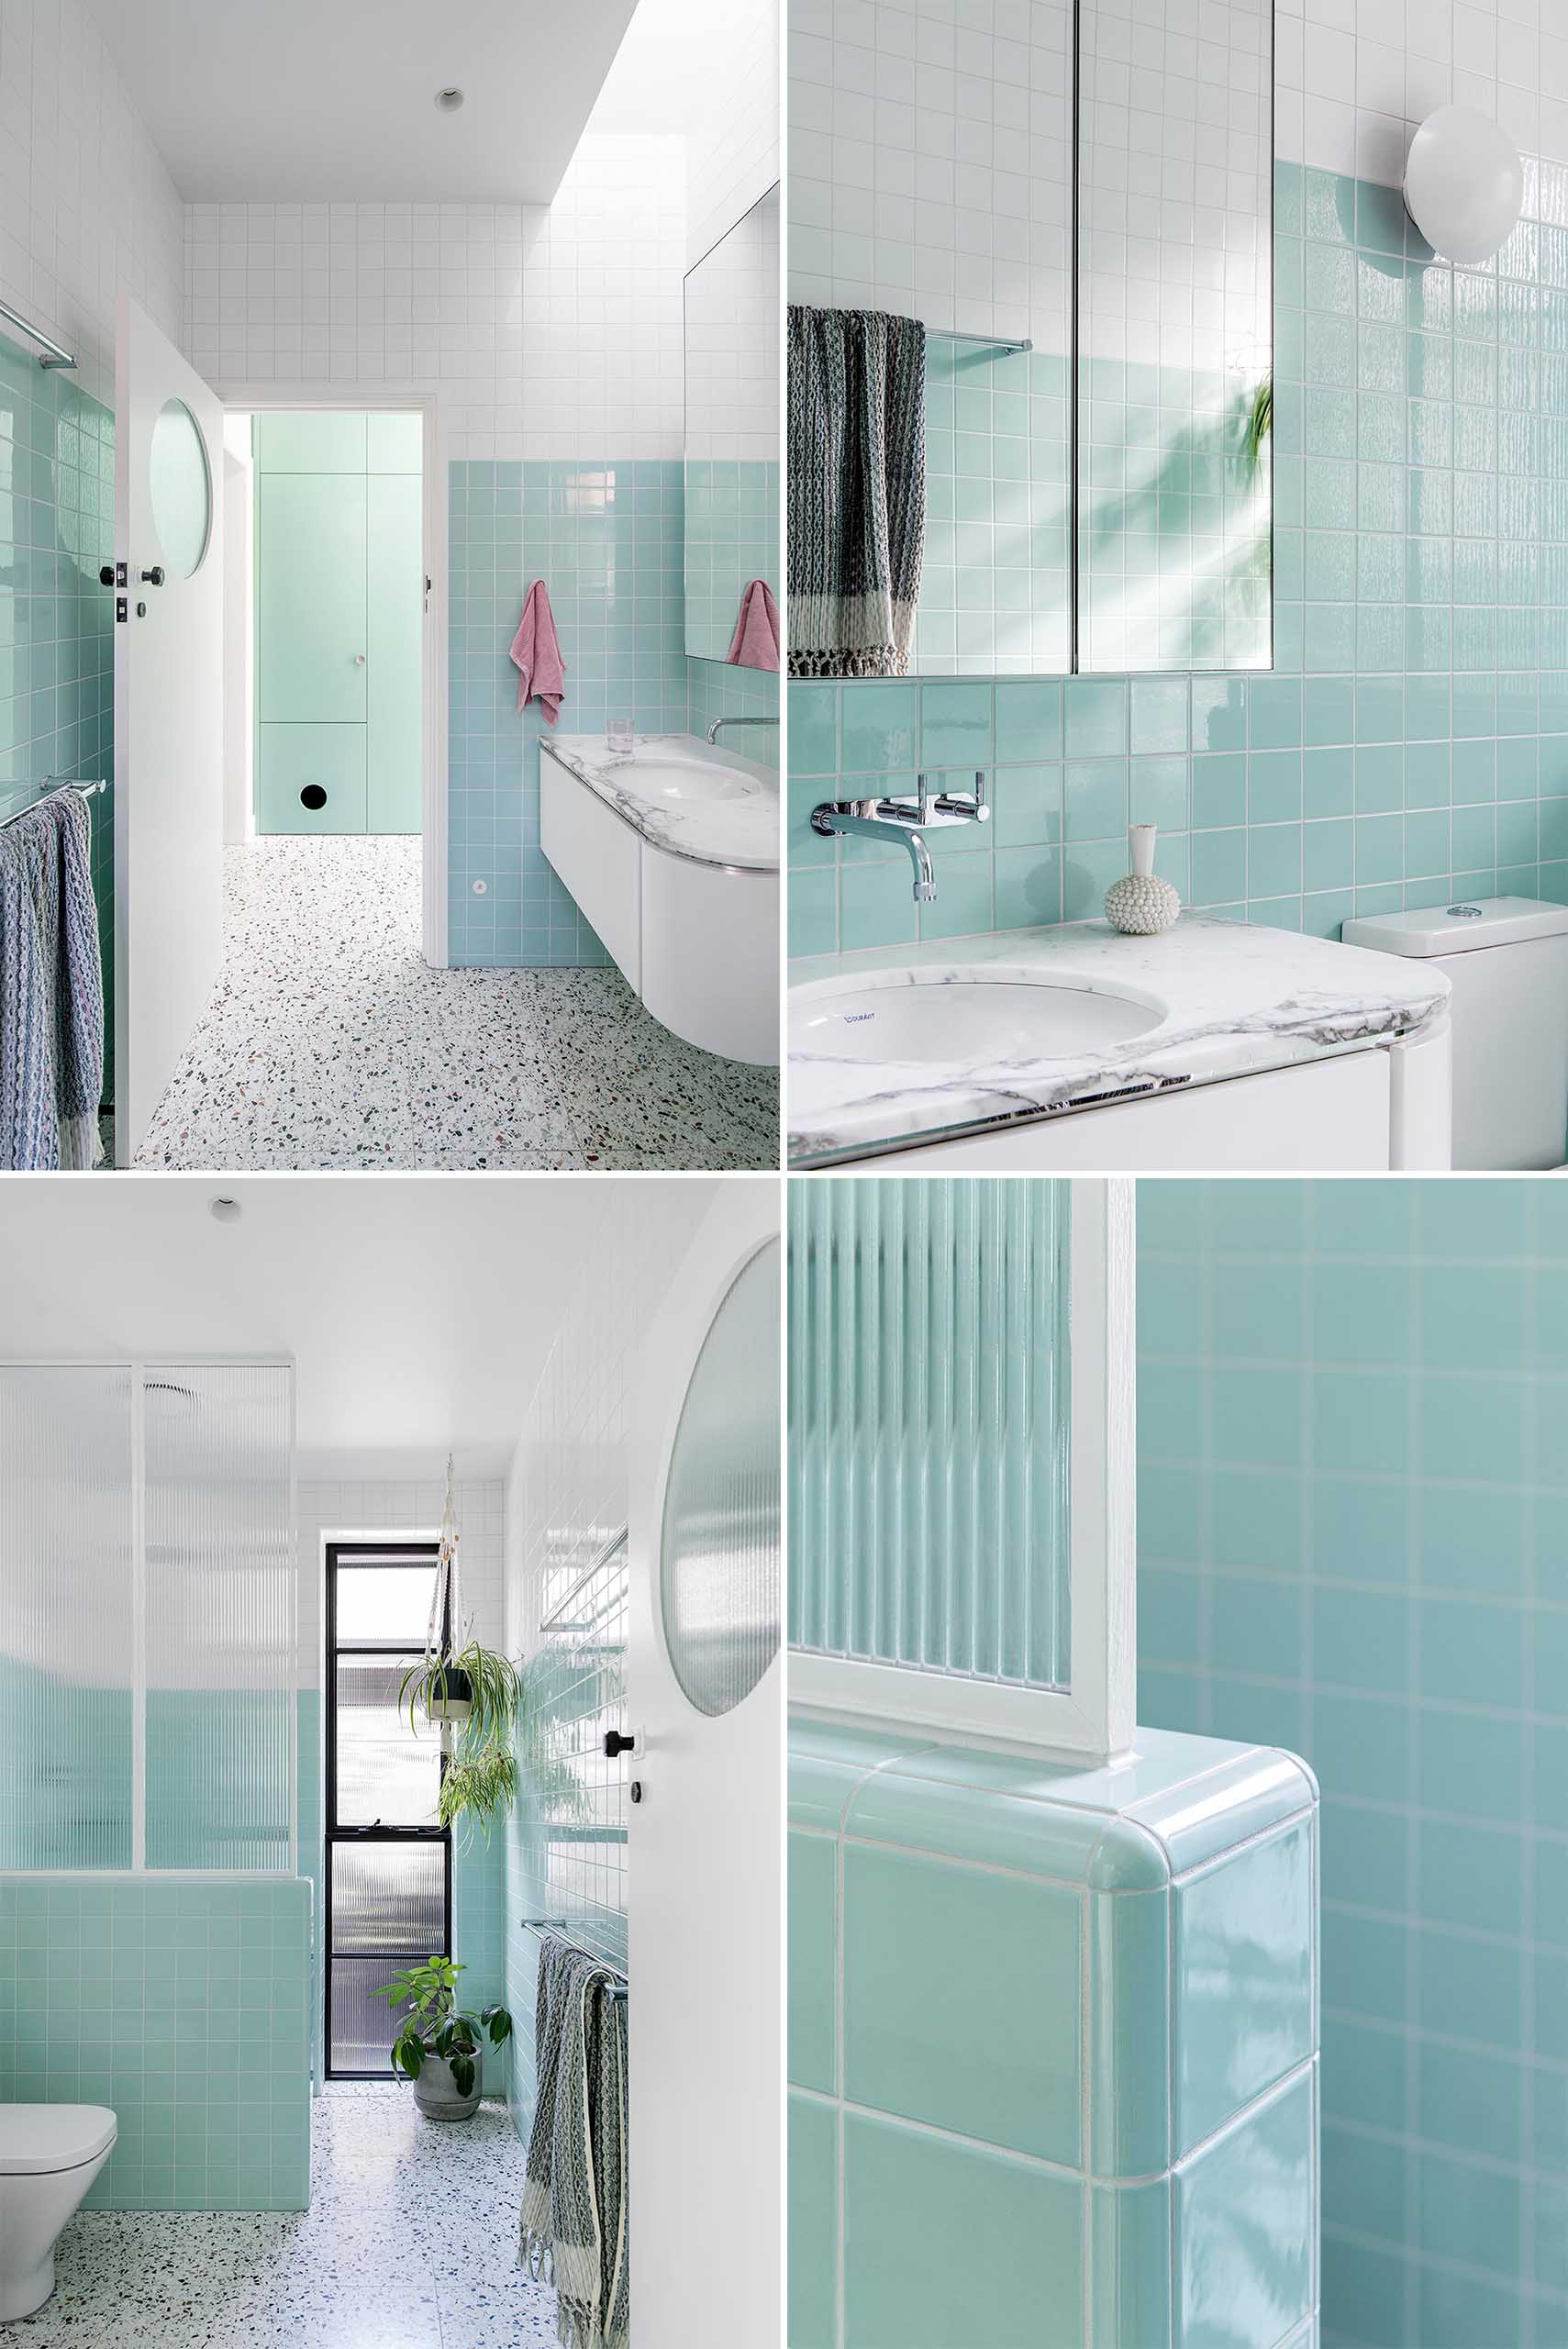 A modern bathroom with white and mint green tiles, a curved vanity, and walk-in shower.